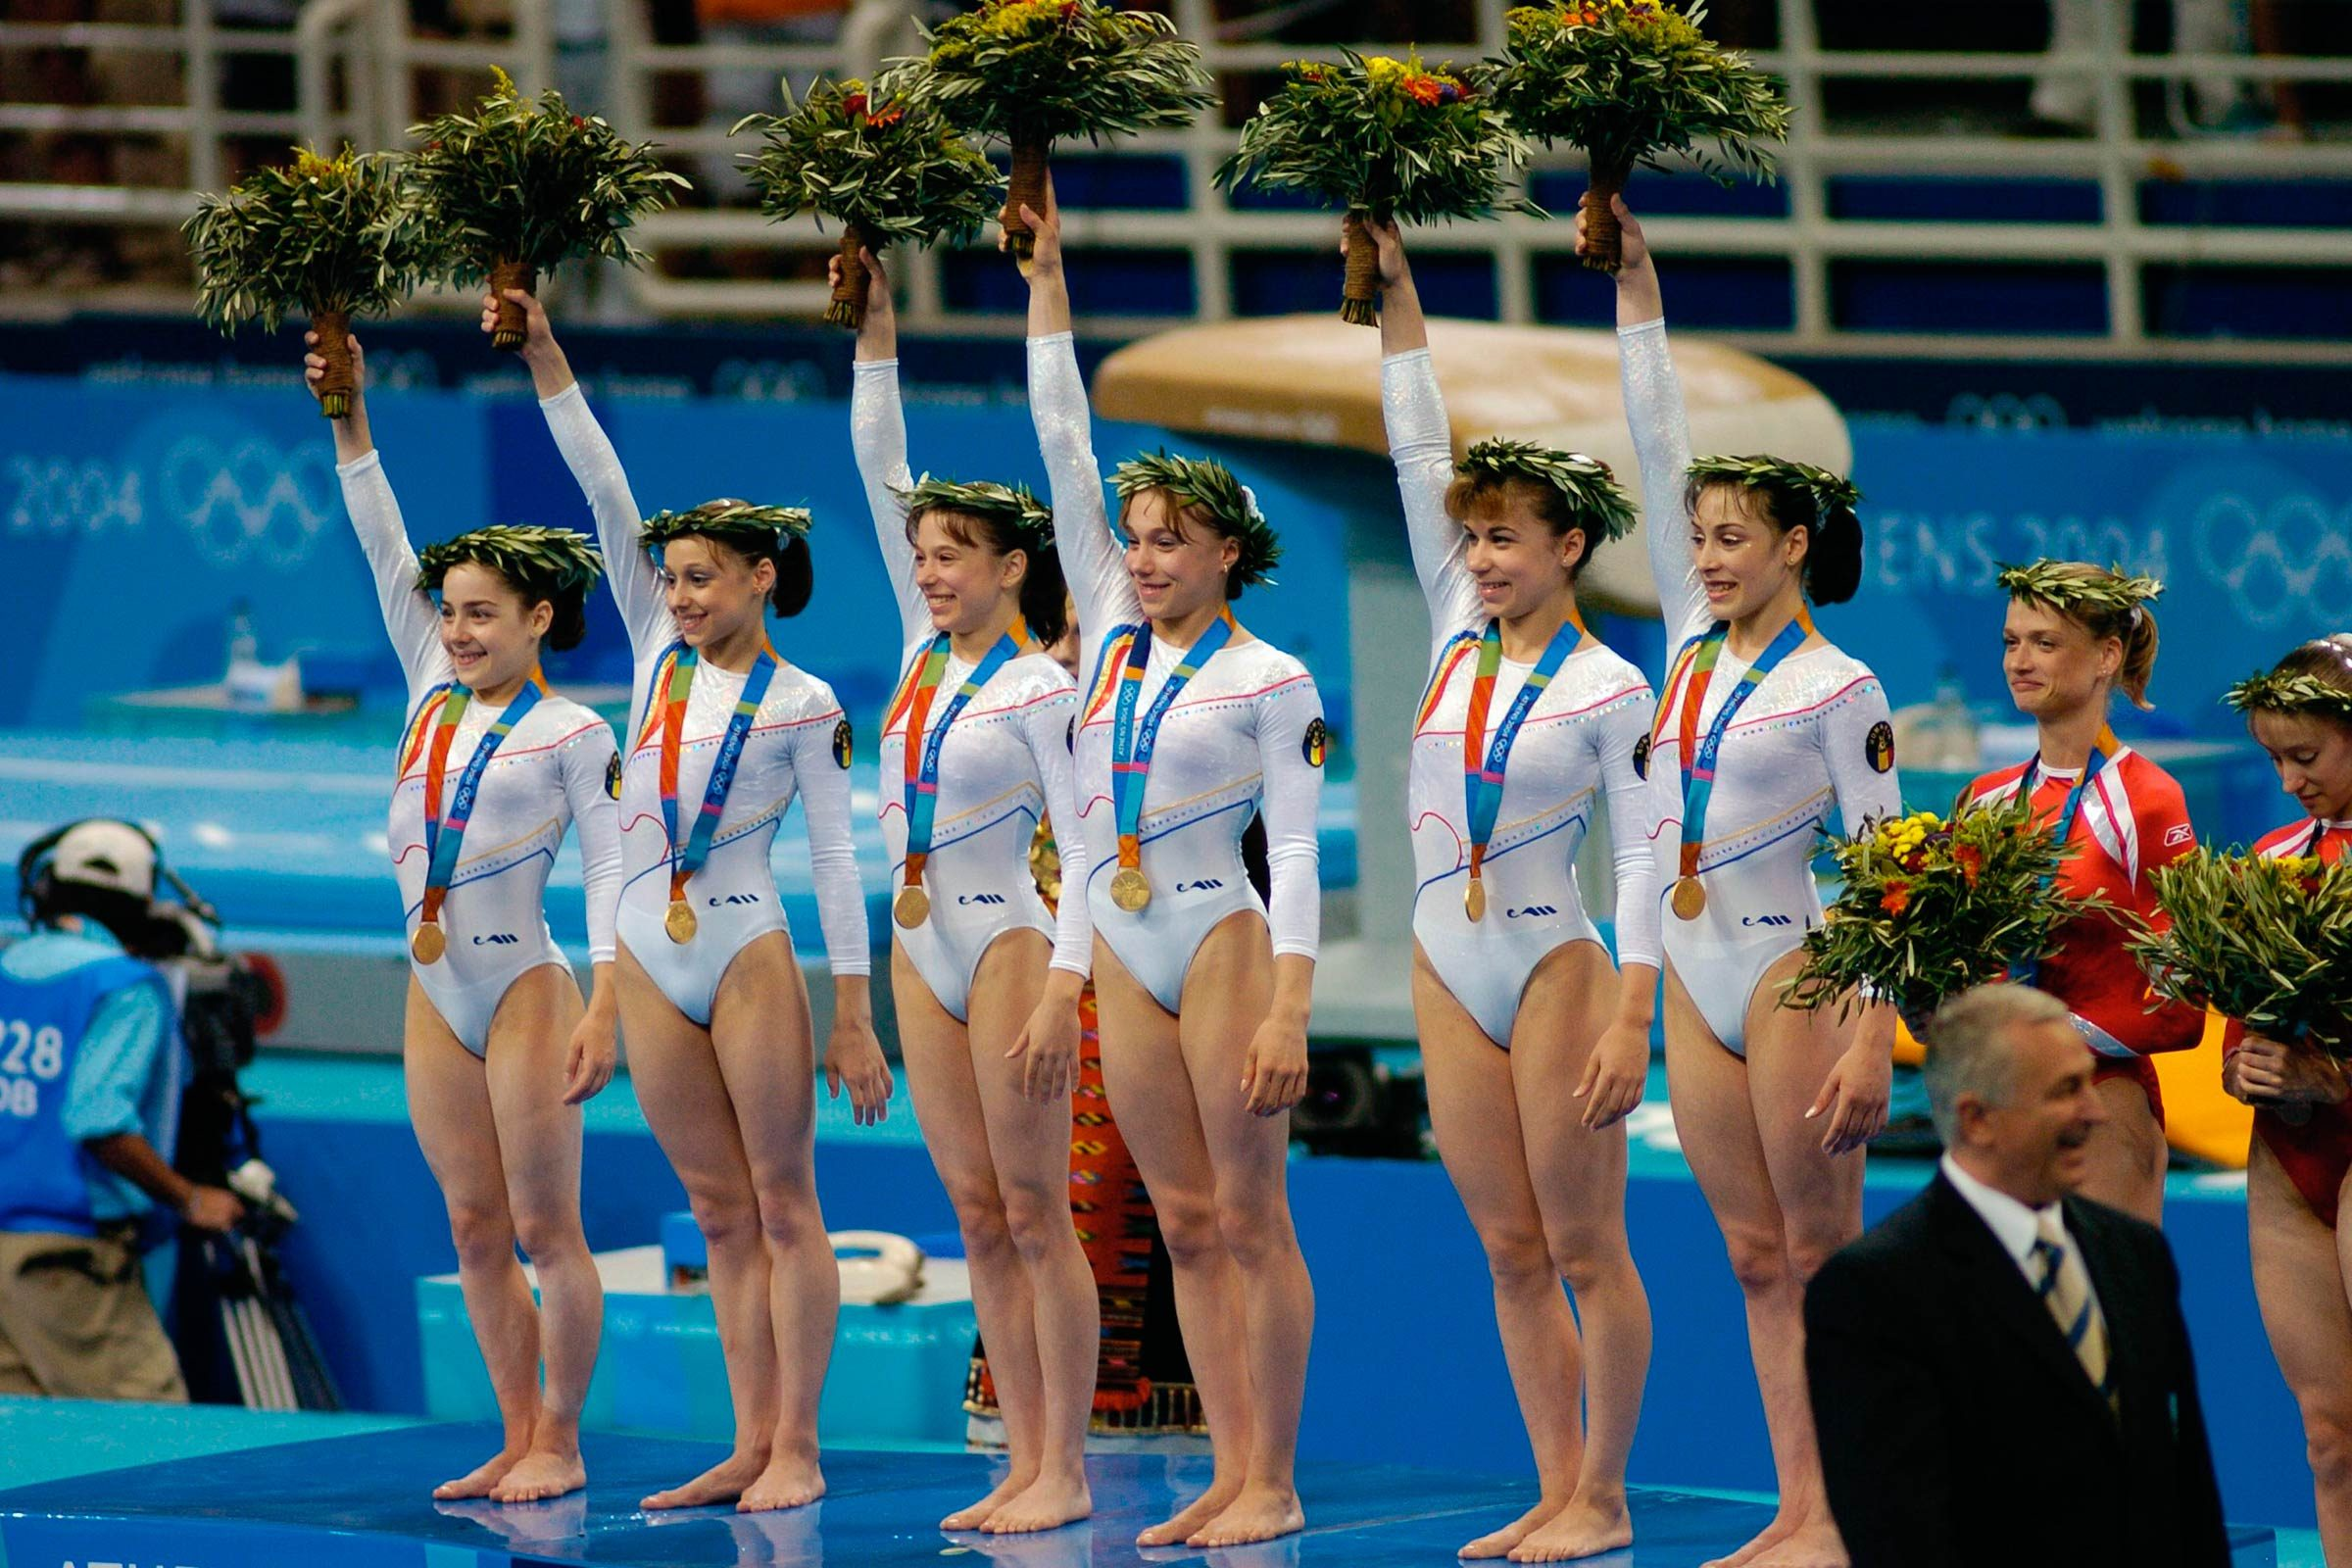 9606fad32fa 8 Photos That Prove Gymnastics Leotards Are Basically the Best Reason to  Watch The Olympics